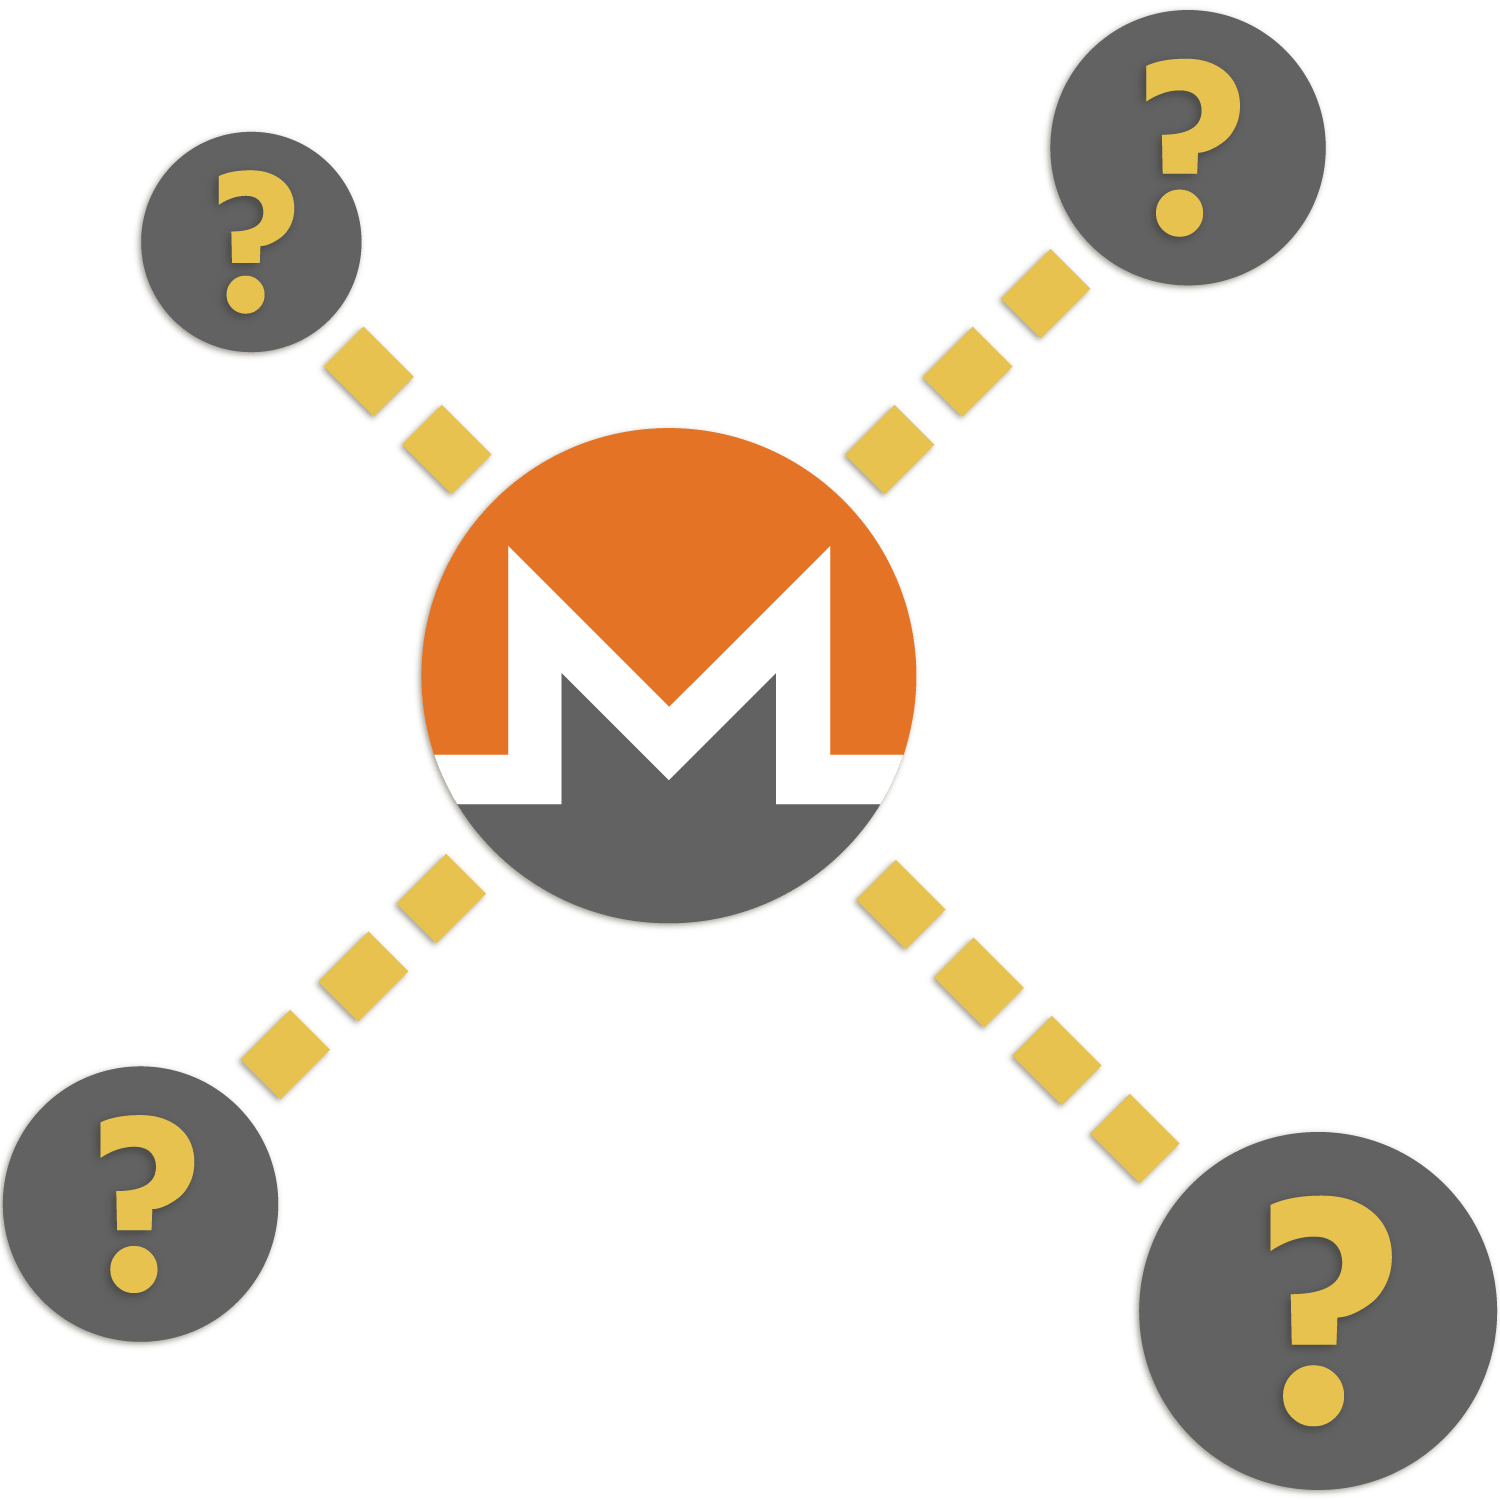 Untraceable Monero paths